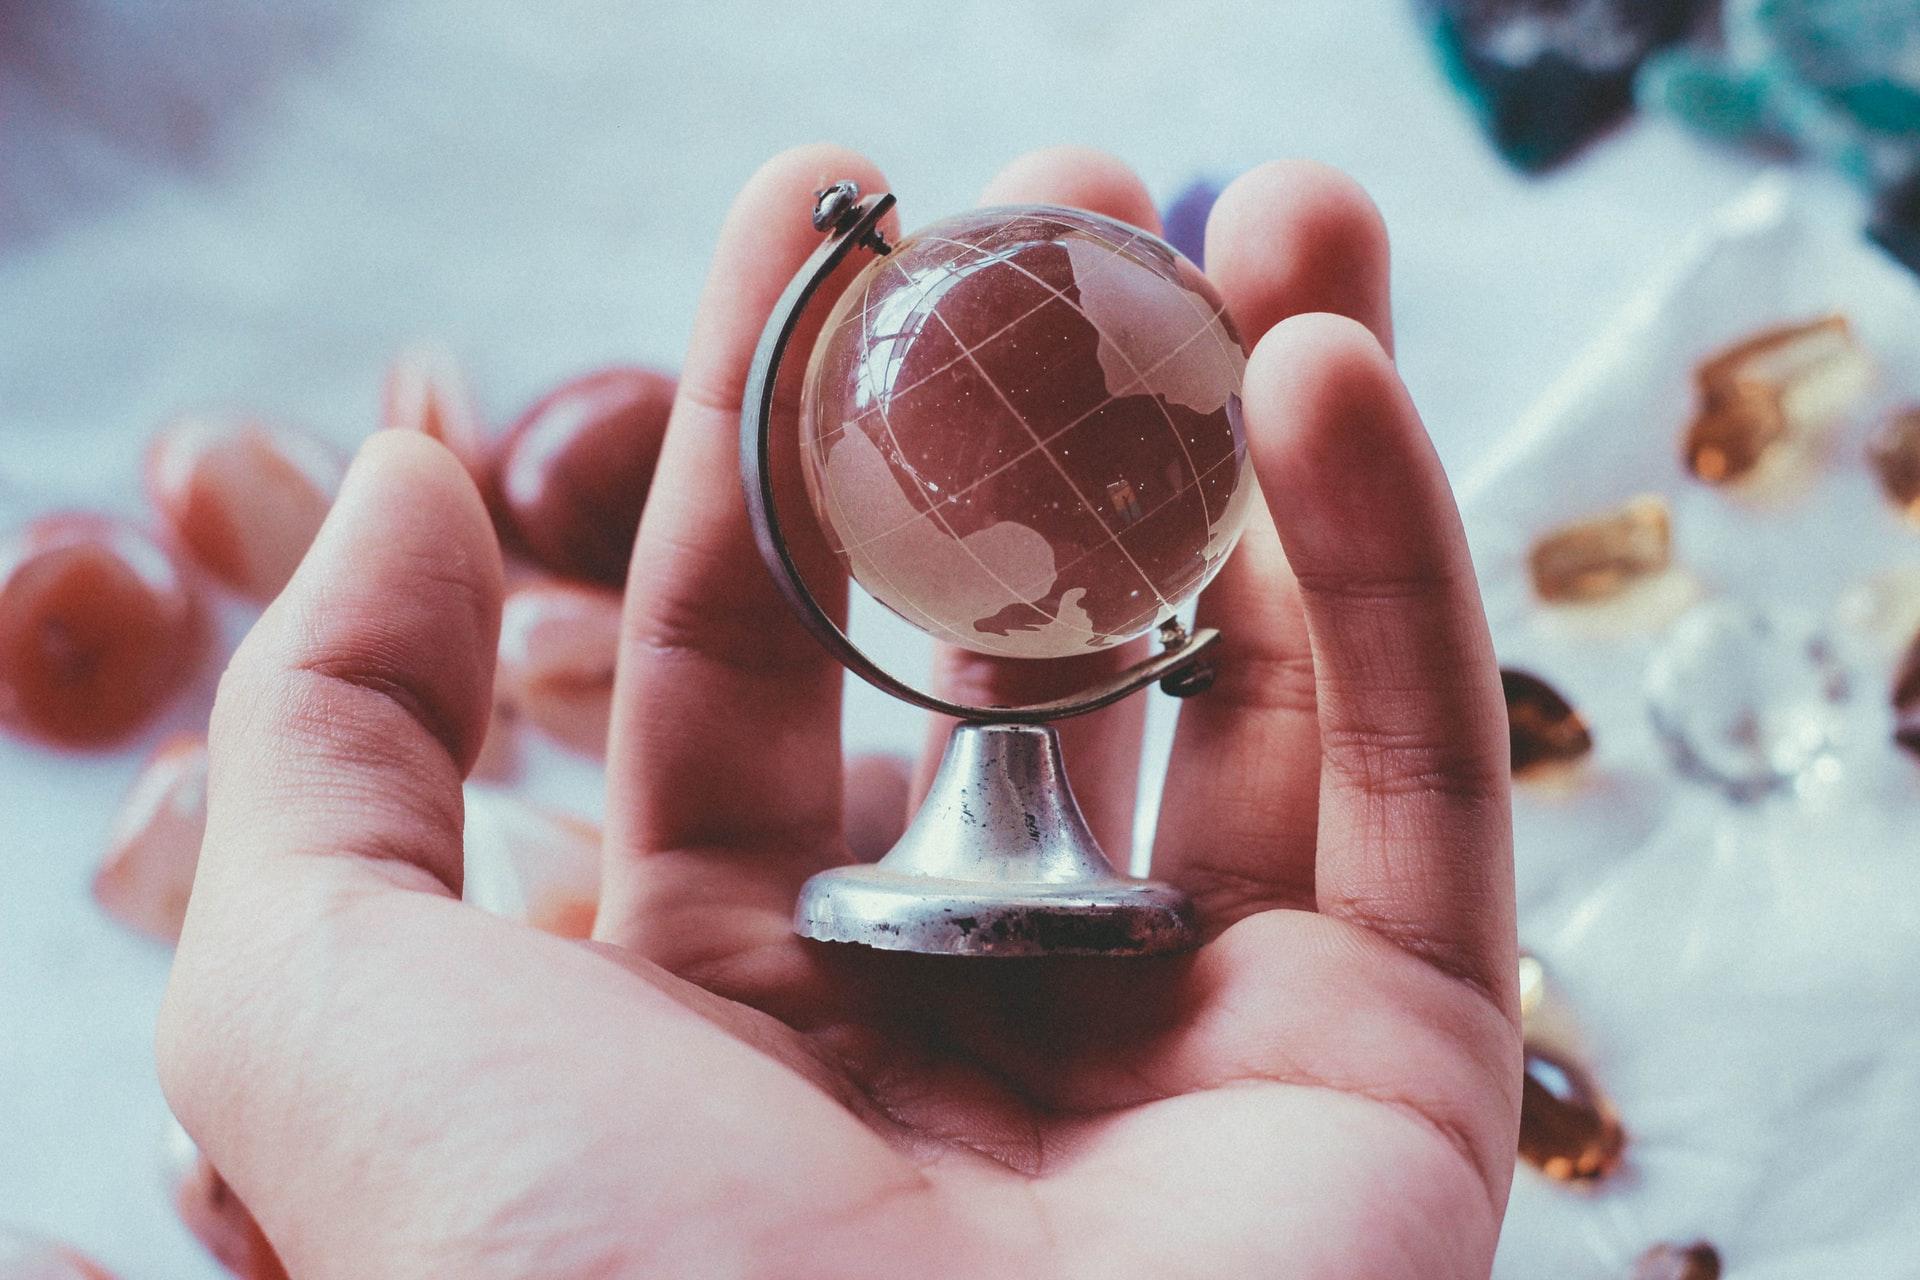 hand holding a small globe